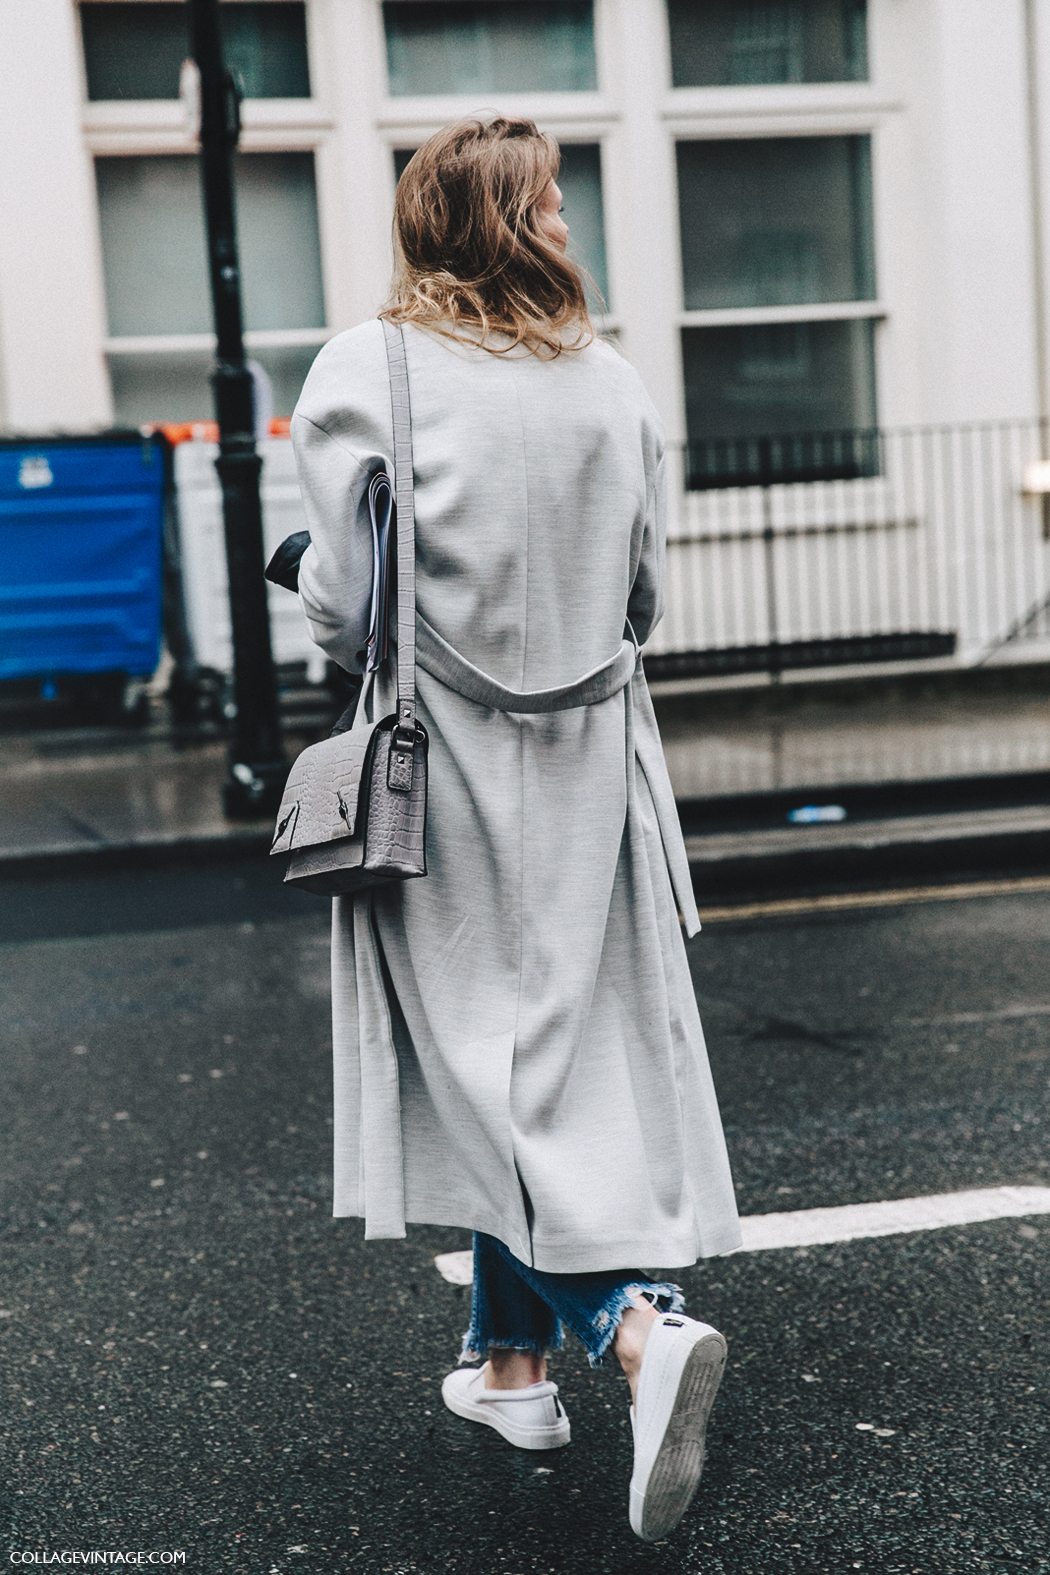 LFW-London_Fashion_Week_Fall_16-Street_Style-Collage_Vintage-Grey_coat-Maxi_Coat-White_Sneakers-2